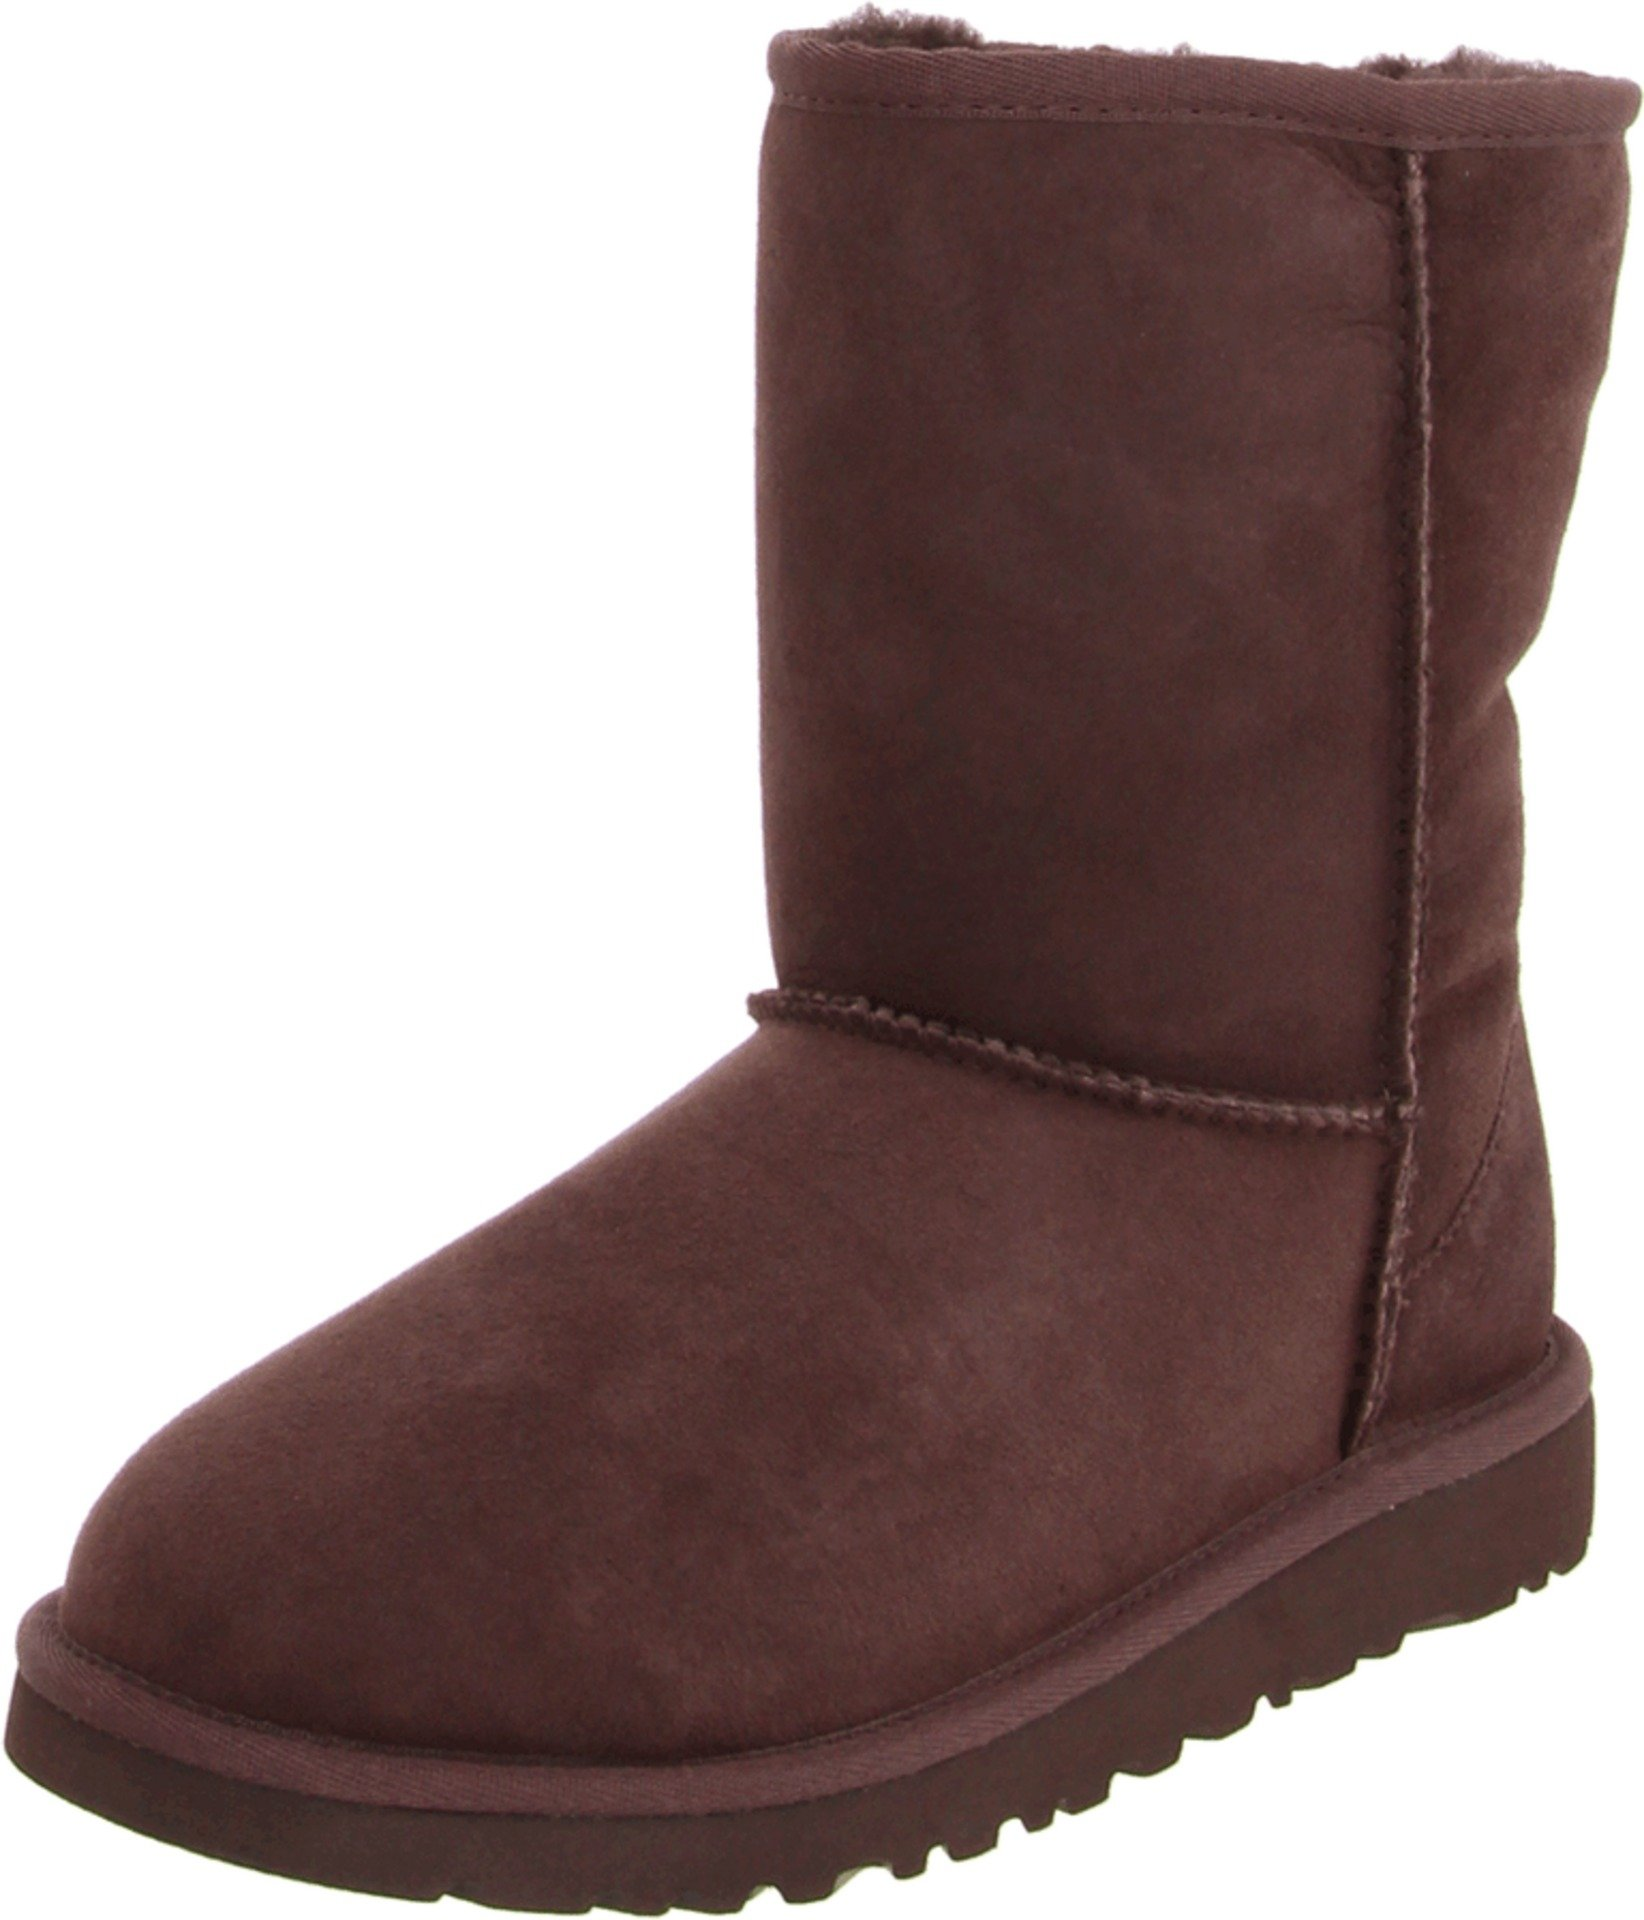 UGG Australia Girls' Classic Short Sheepskin Fashion Boot Chocolate 3 M US